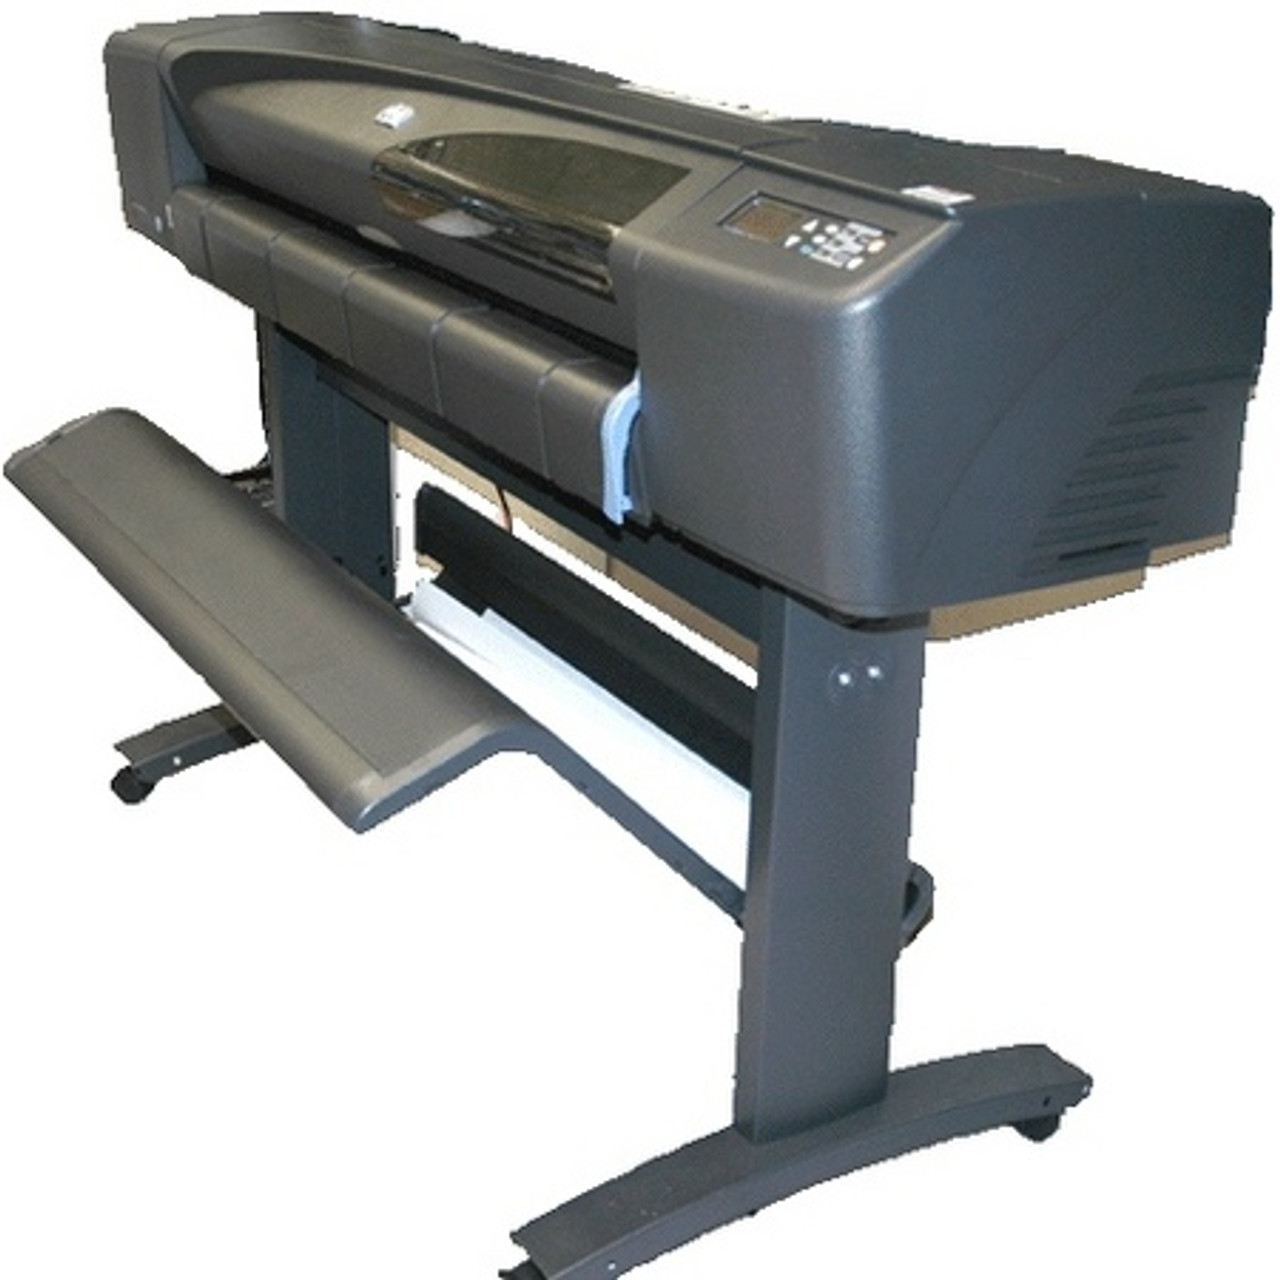 HP 800 plotter for sale